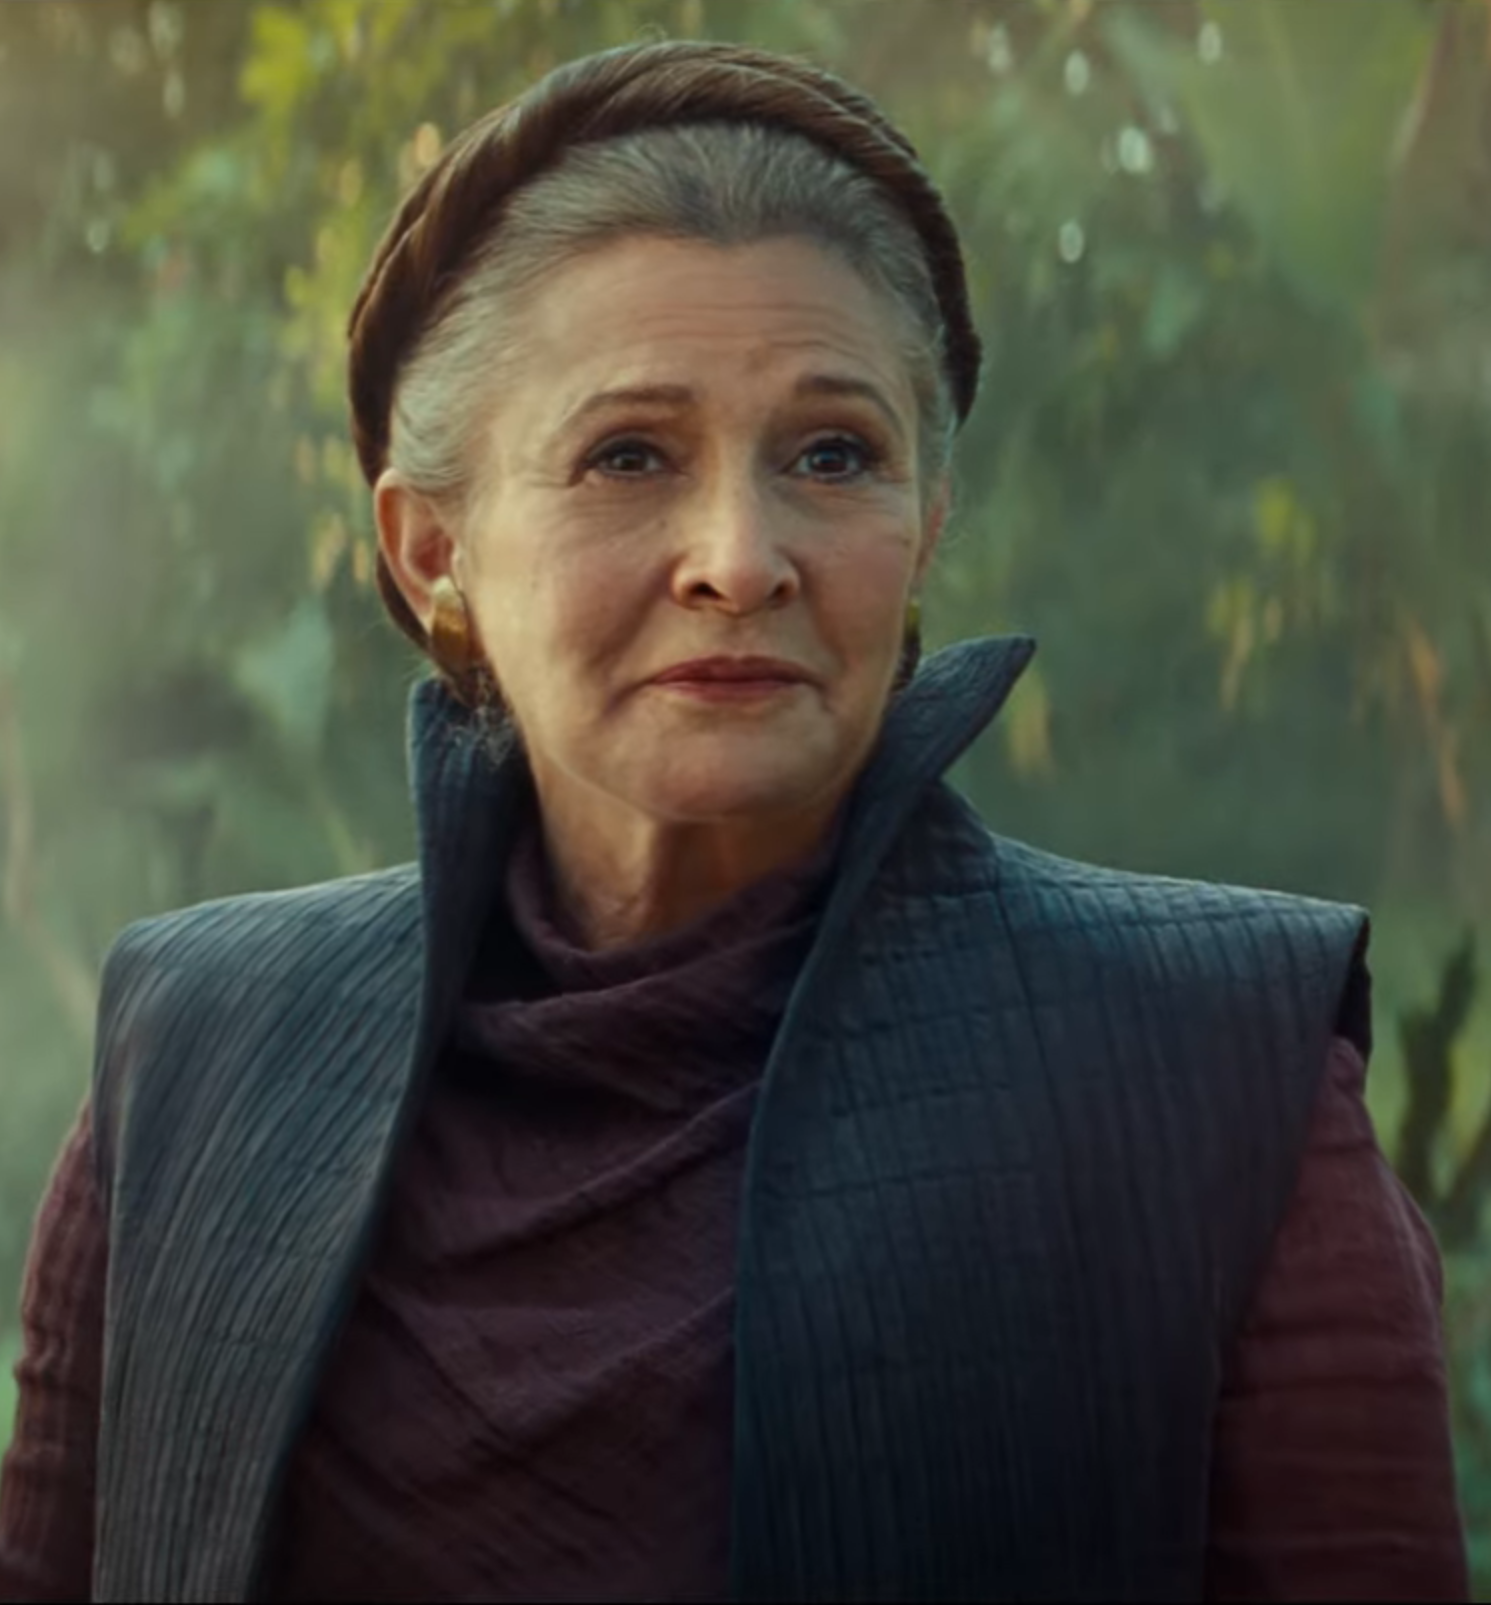 rise of skywalker leia 20 Reasons Why Star Wars: The Rise Of Skywalker Makes Absolutely No Sense